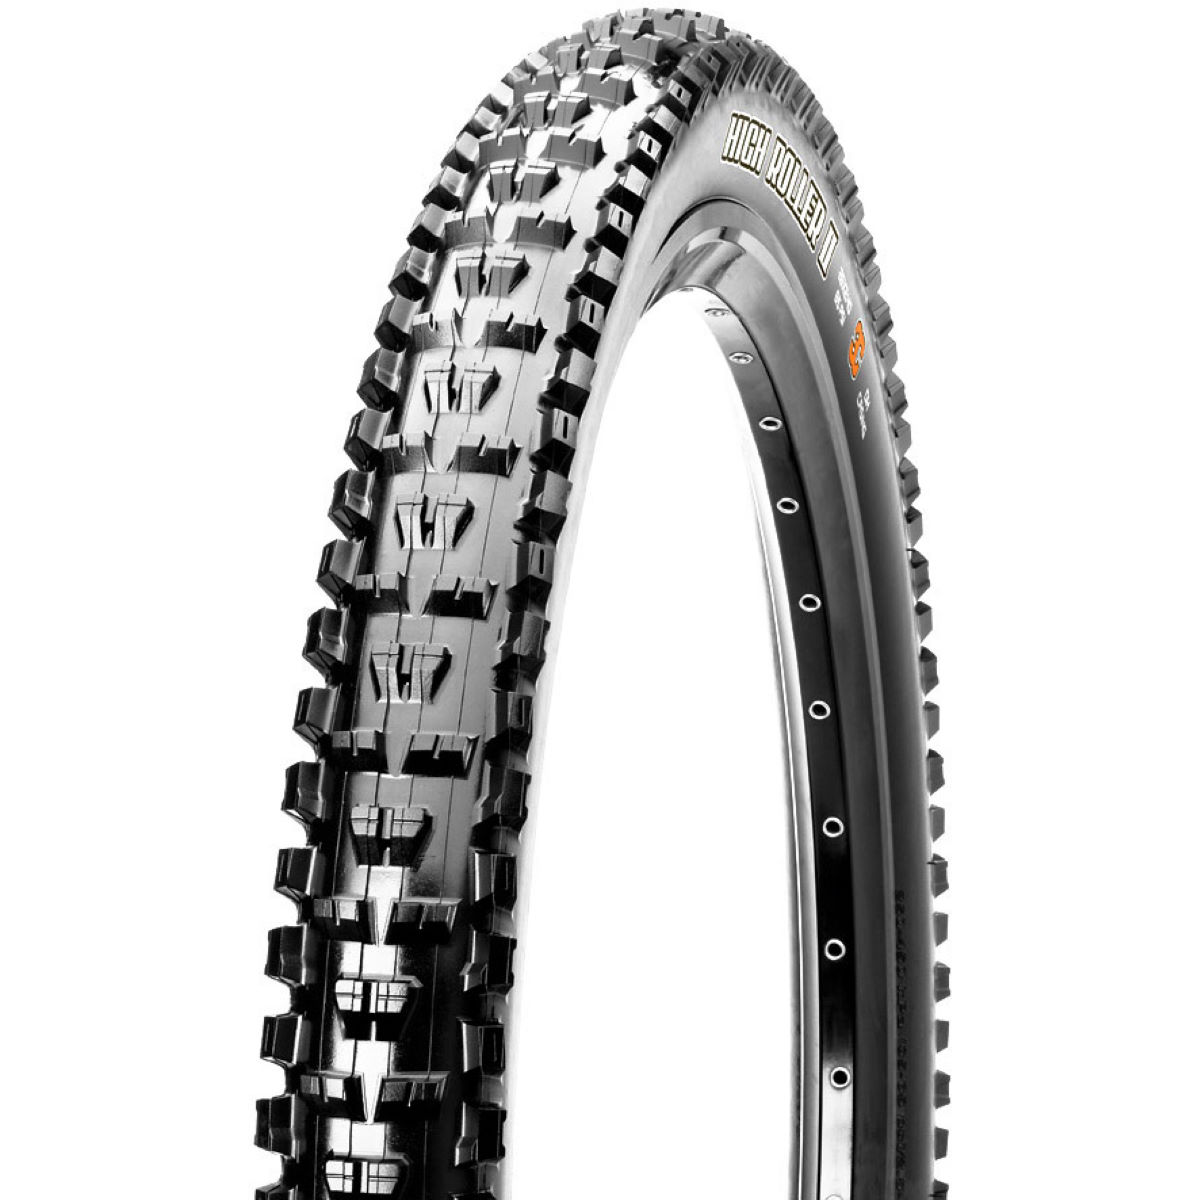 Maxxis Maxxis High Roller II MTB Plus Tyre - EXO - TR   Tyres